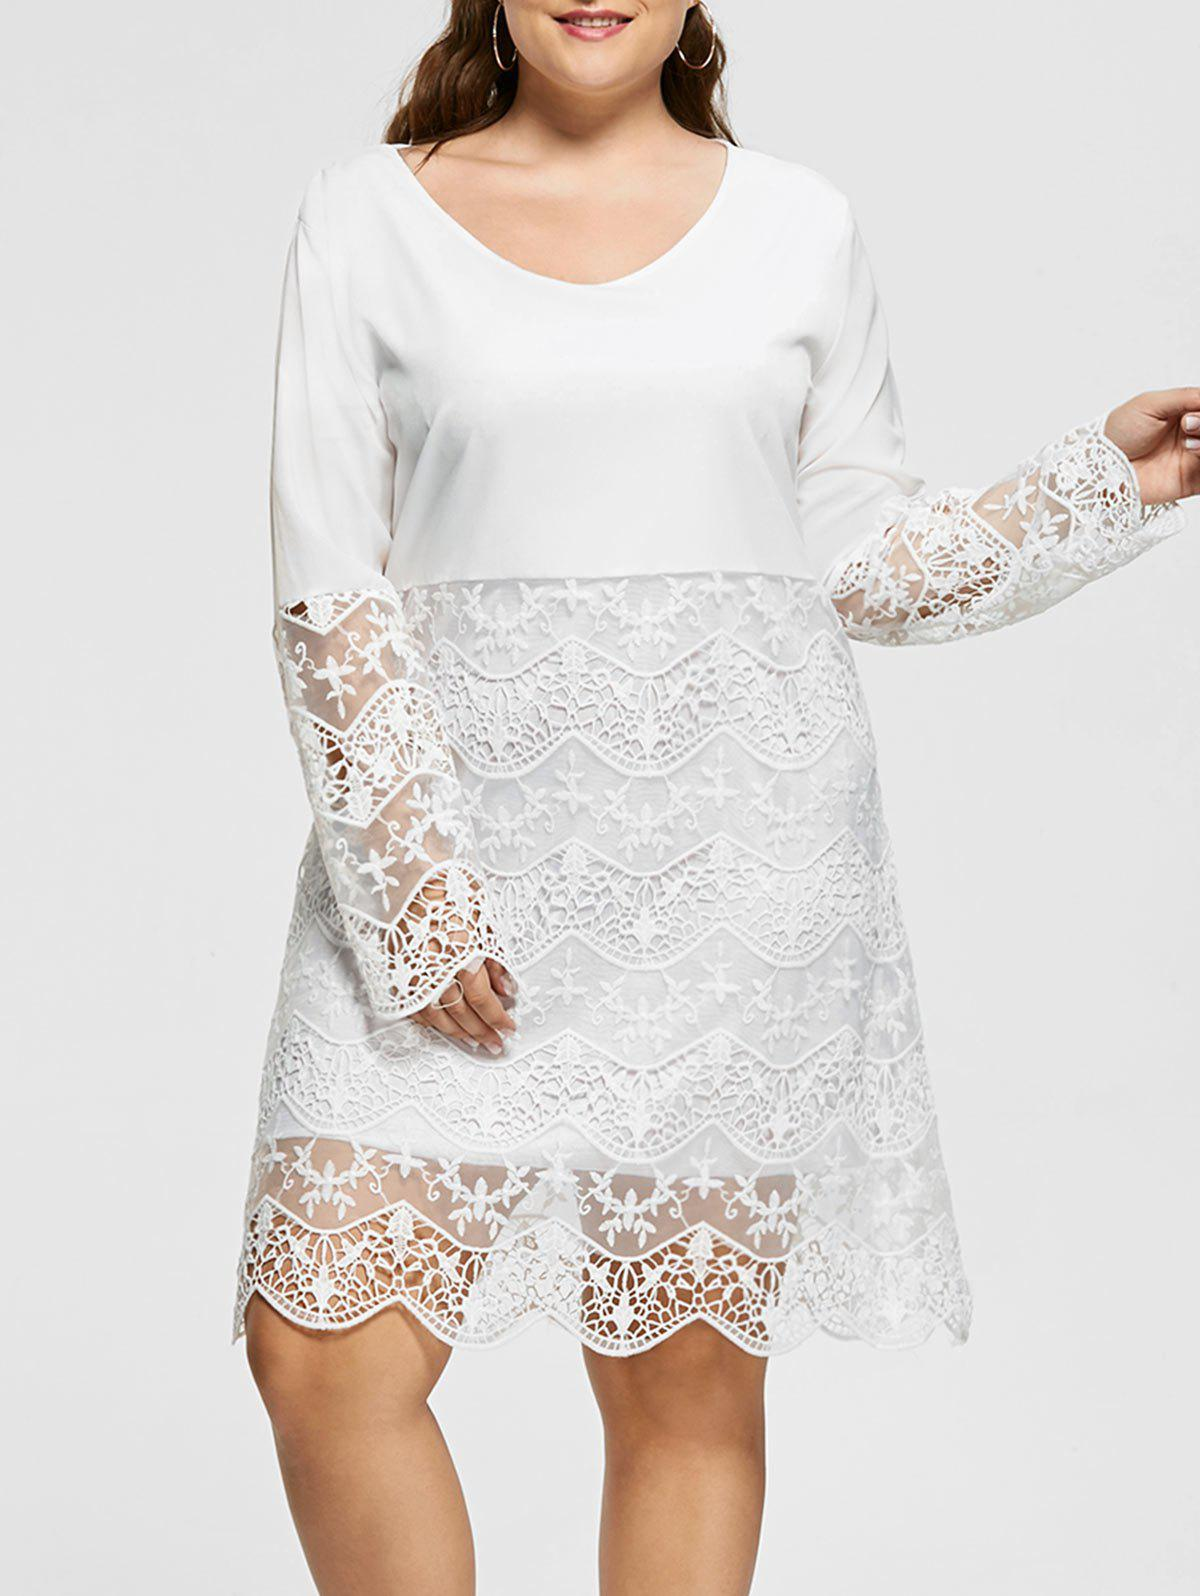 2018 Lace Trim Long Sleeve Plus Size Dress White Xl In Dresses 2018